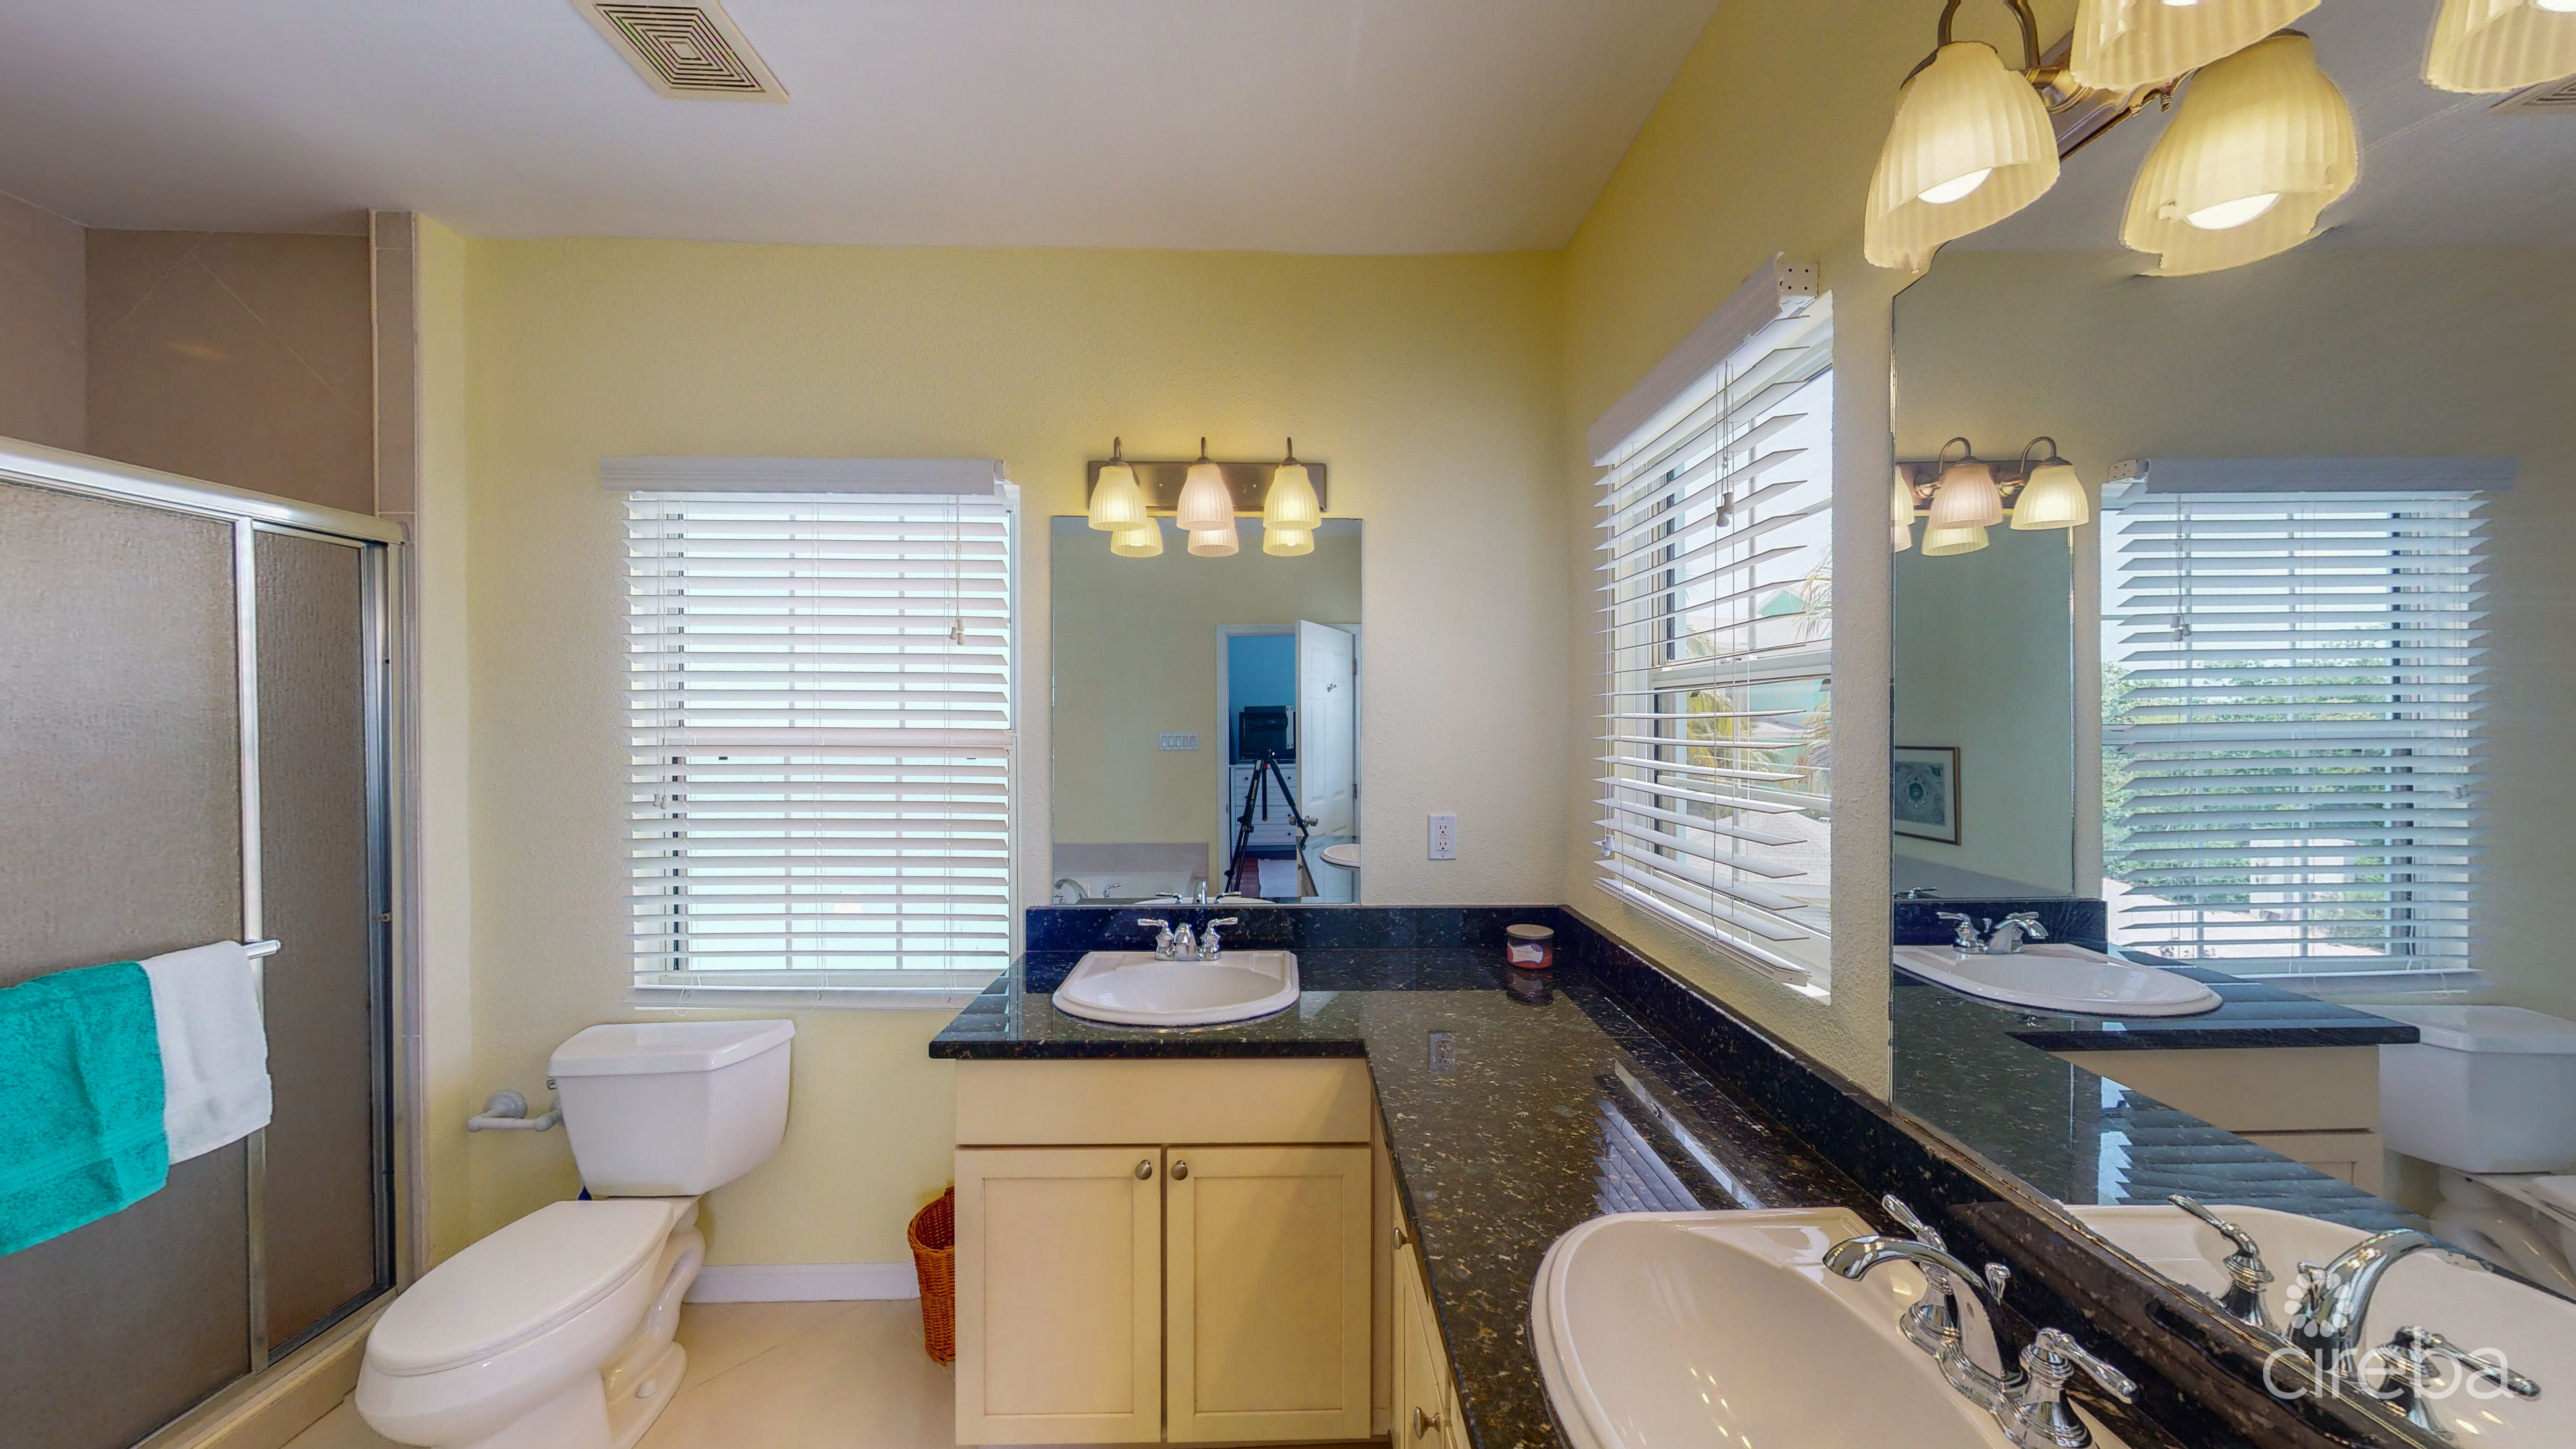 Ensuite master bathroom with  His and her vanity, shower, and soaking tub.